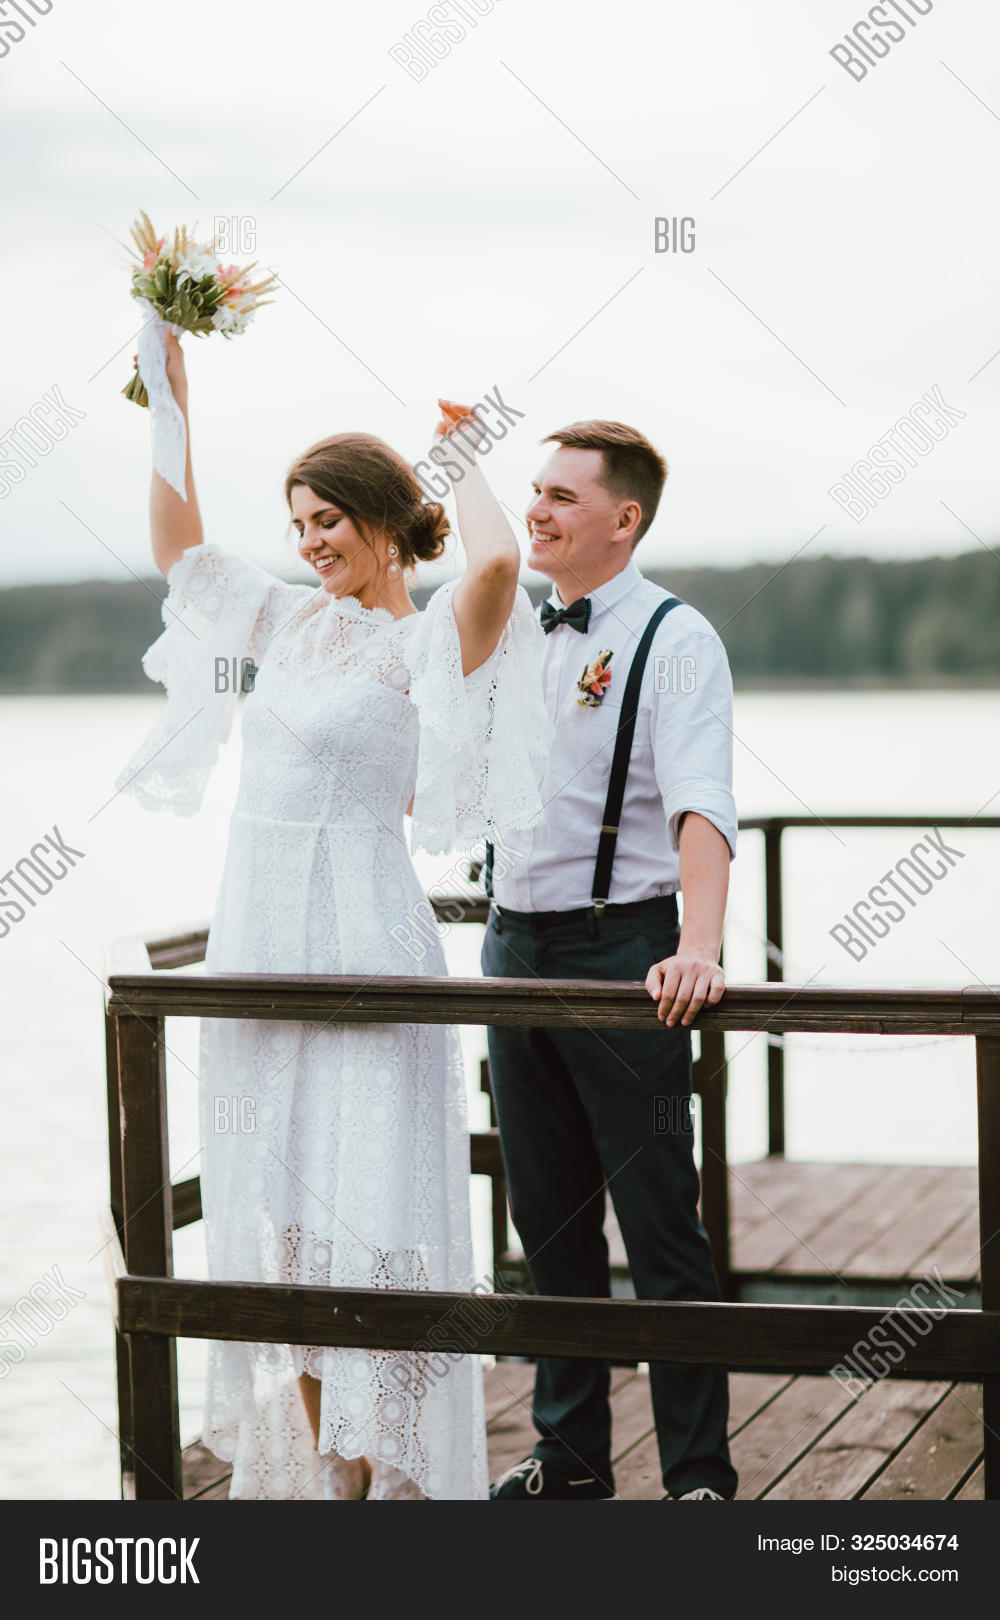 Happy Newly Married Image Photo Free Trial Bigstock